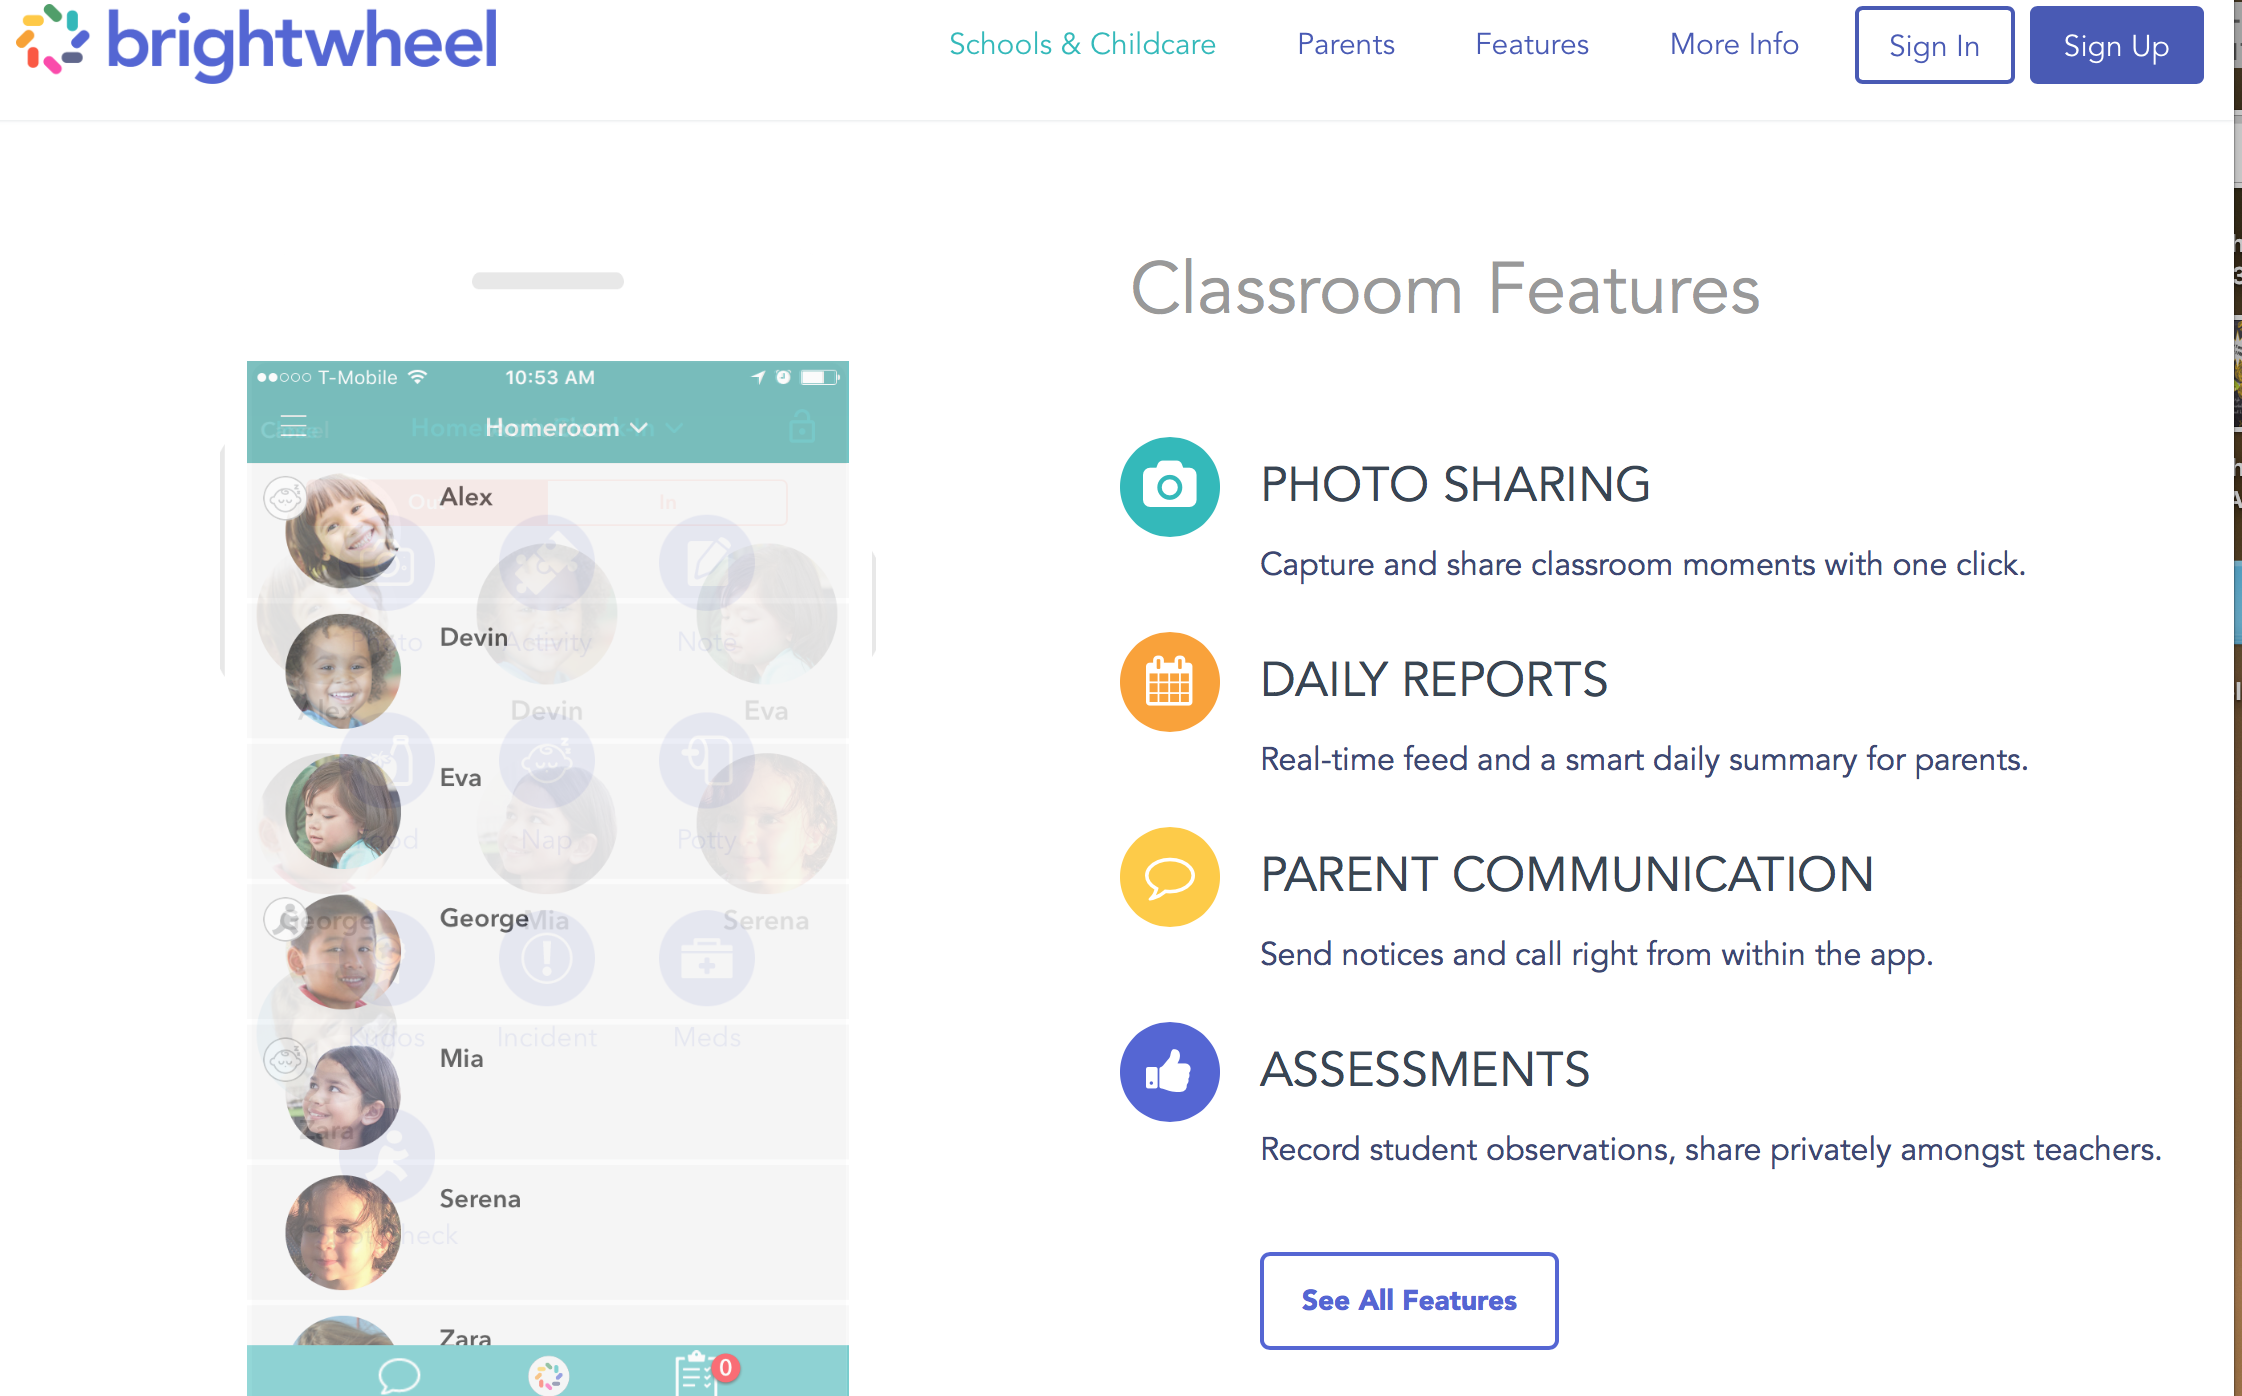 Brightwheel Mobile Application: - Little Wonders utilizes the brightwheel application for a real-time update on your child's activity. Upon registering, parents can stay connected with their child via brightwheel by monitoring their child's page that will display photos, naptime status, and other information as well as allowing for a digital check-in check-out. The program also features automatic electronic billing. For more information visit mybrightwheel.com.